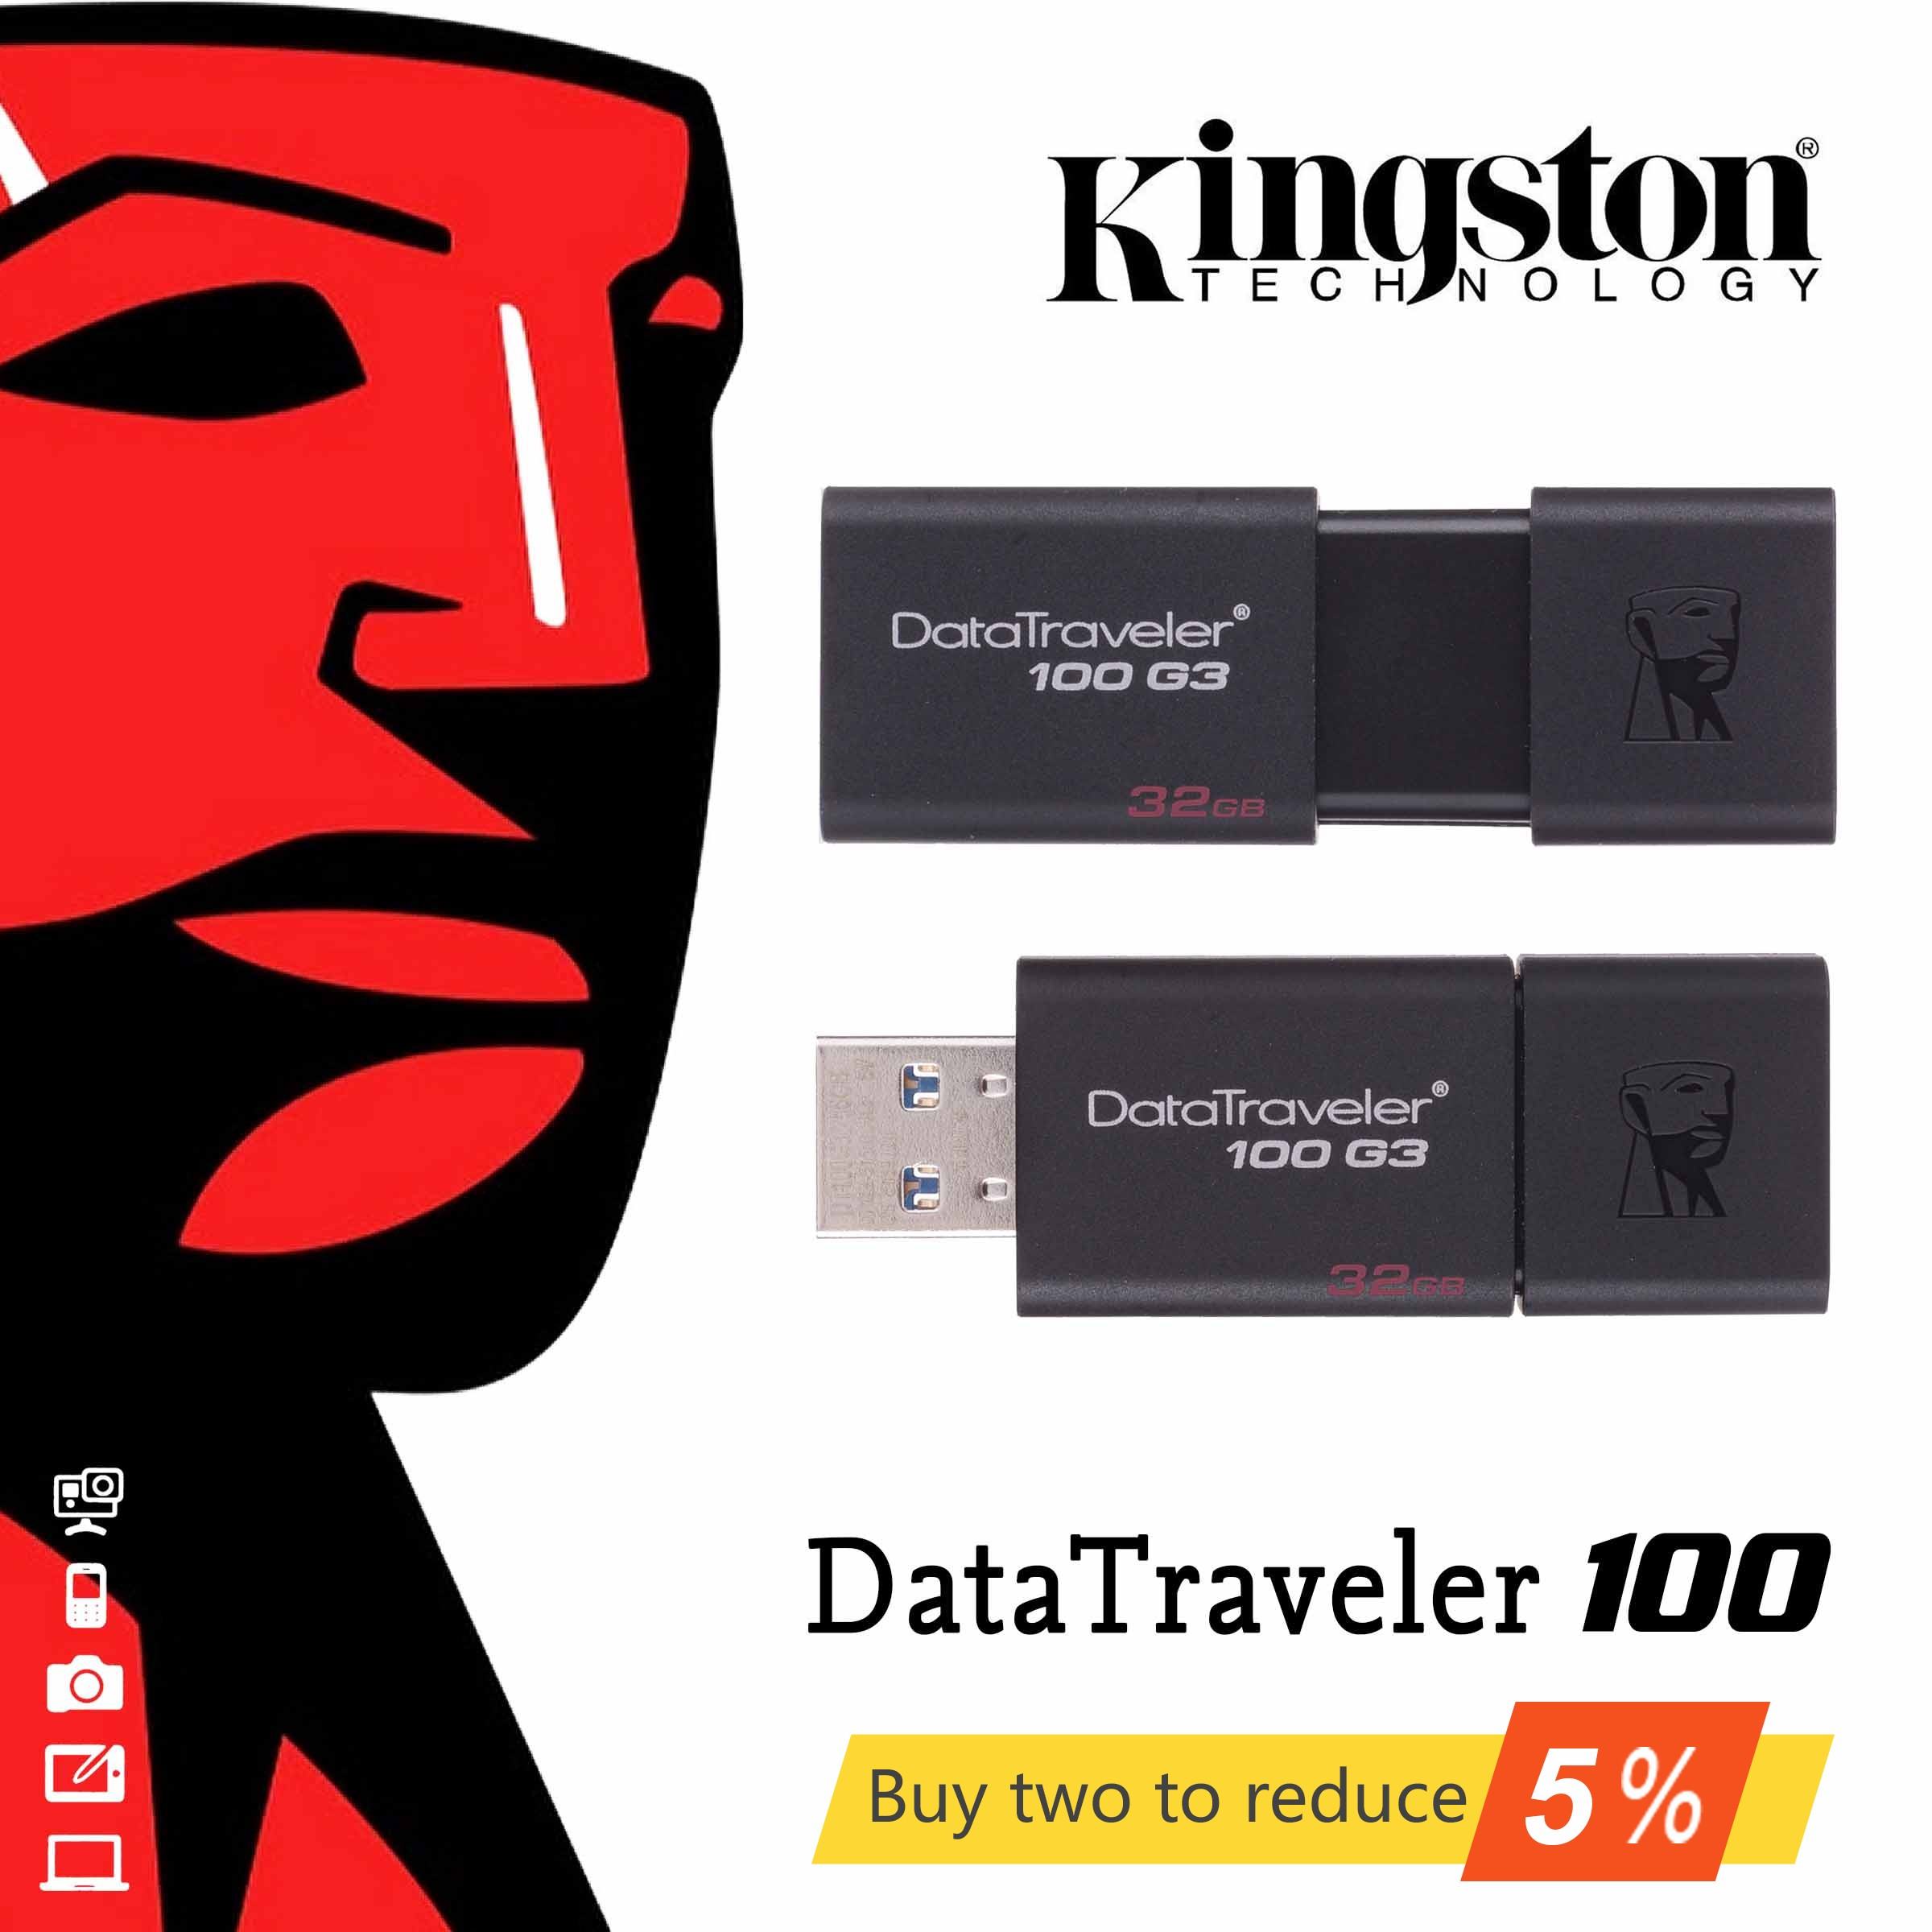 Original <font><b>USB</b></font> 3.0 Geschwindigkeit DataTraveler <font><b>Kingston</b></font> <font><b>USB</b></font> Flash Drive 16 GB 32 GB 64 GB 16 32 64 GB Memory-Stick stick Stift Stick DT100G3 image